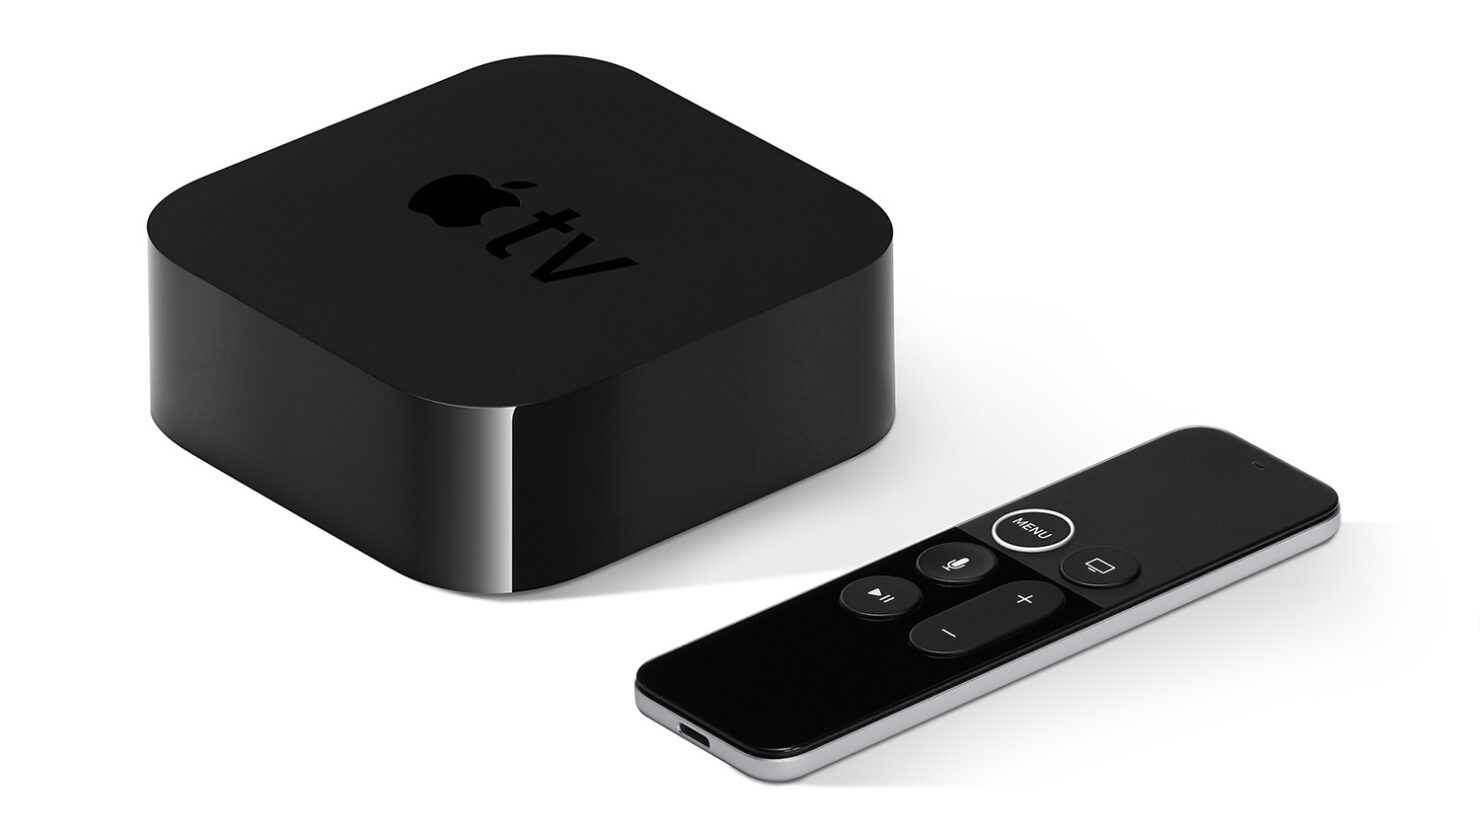 New Apple TV 4K Specs Shared - Tipped to Feature Powerful A12X Bionic, With Two Storage Capacities Available